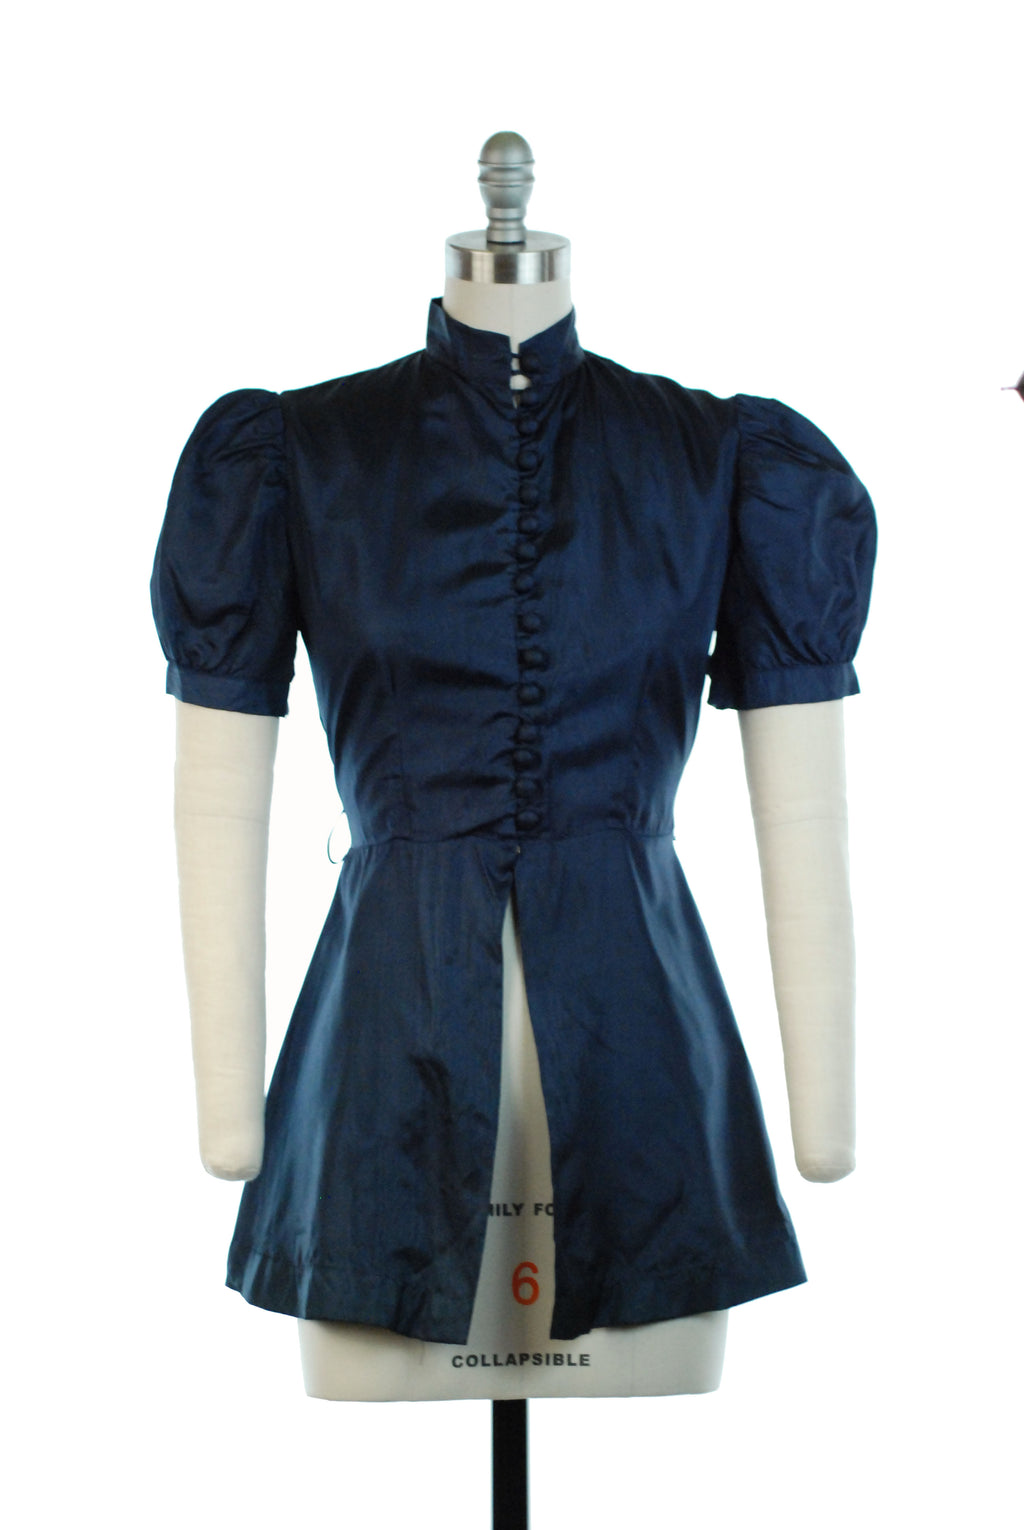 Fab 1930s Navy Blue Puffed Sleeve Peplum Top with Covered Buttons